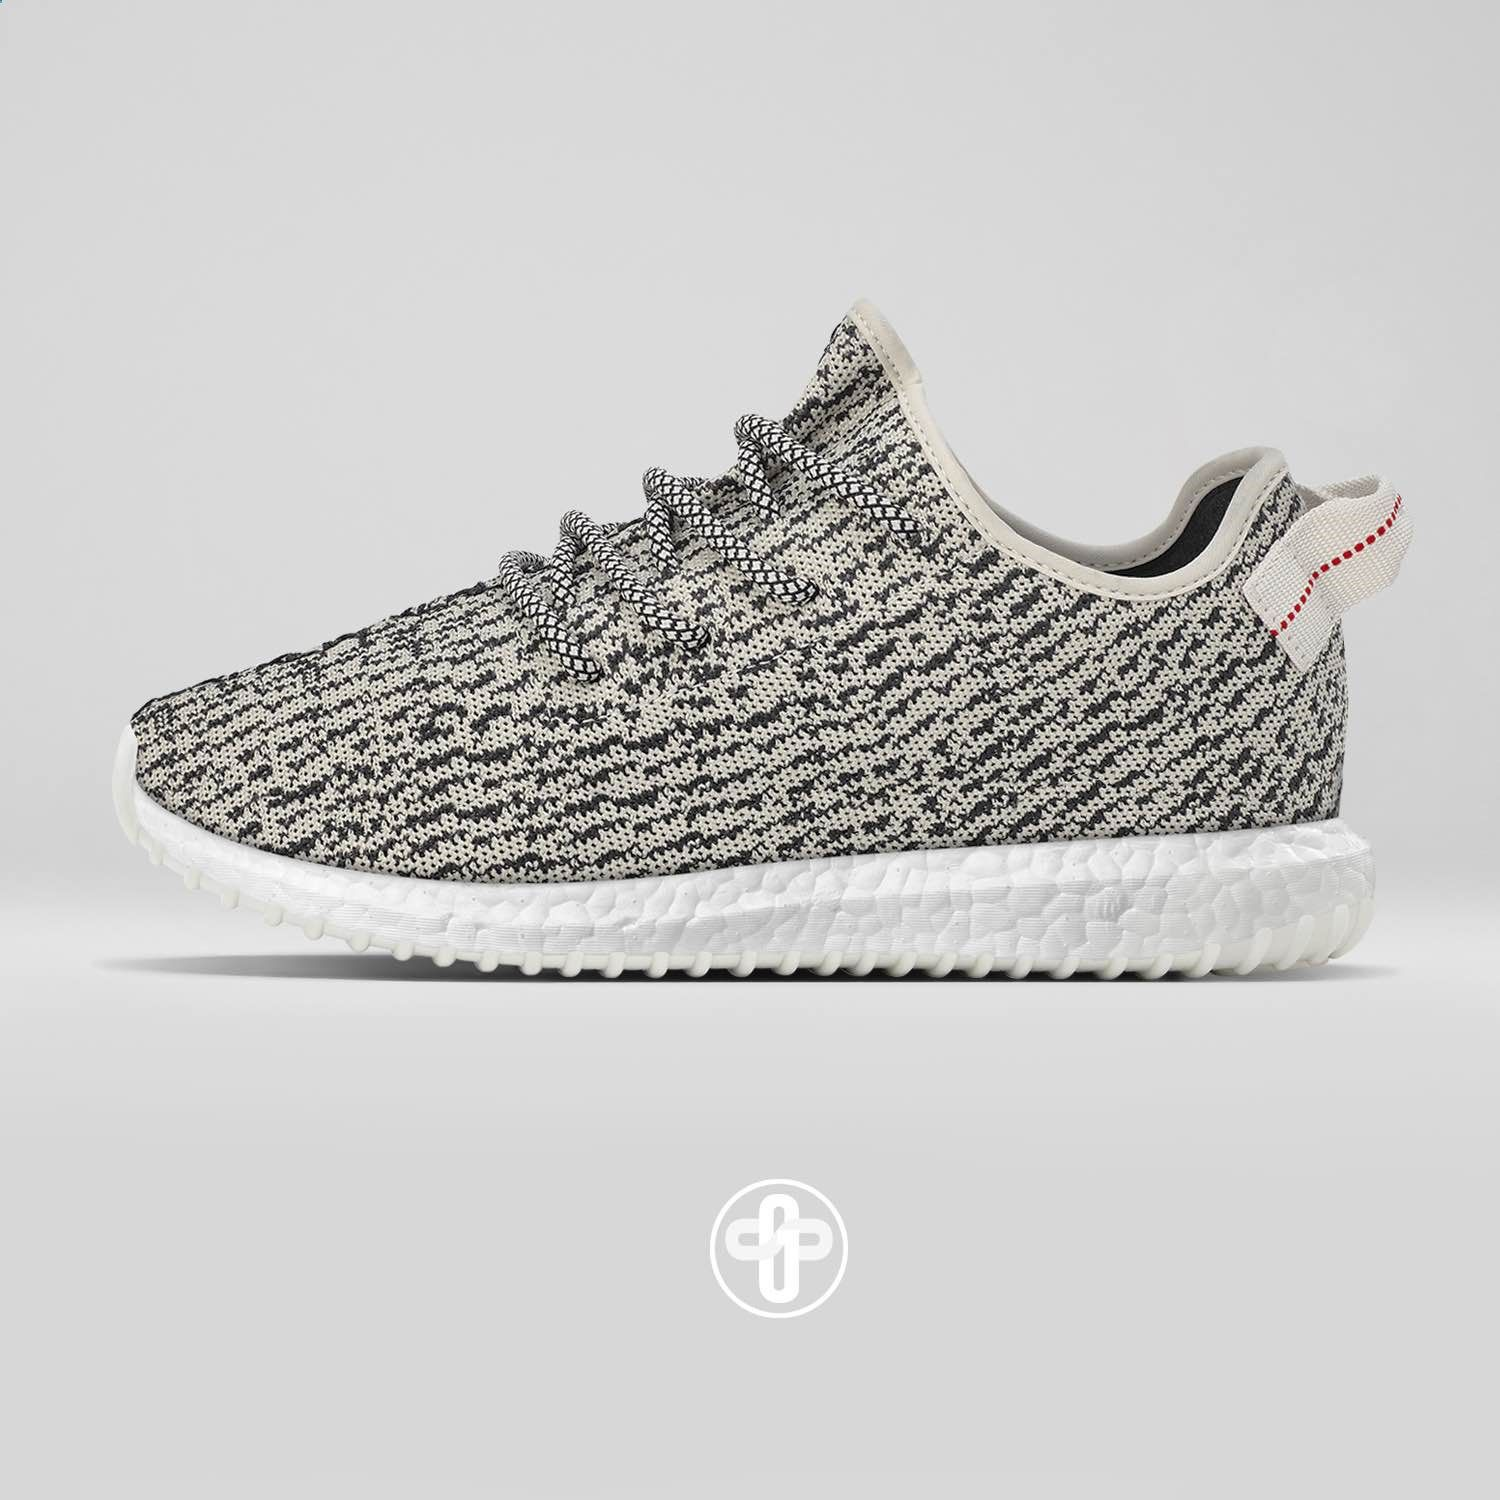 92d386331 Adidas Yeezy Extra Boost 350 Turtle Dove